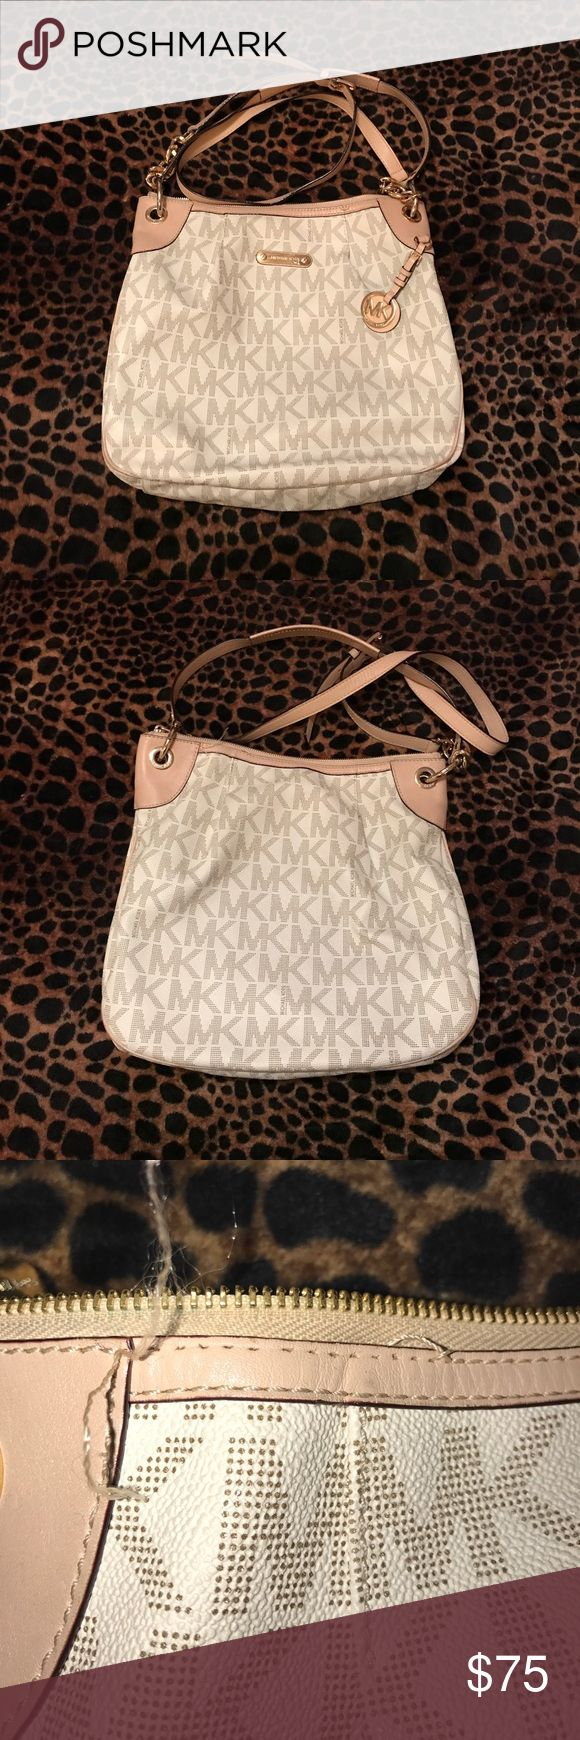 🌺🌹beautiful Micheal Kors bag🌹🌺🌹 This is A beautiful Michael Kors bag. Threading is loose around the zipper part as seen in the pics. Has a few little ink stains on the interior as seen in the pics. The straps are great. All around good bag. Michael Kors Bags Shoulder Bags